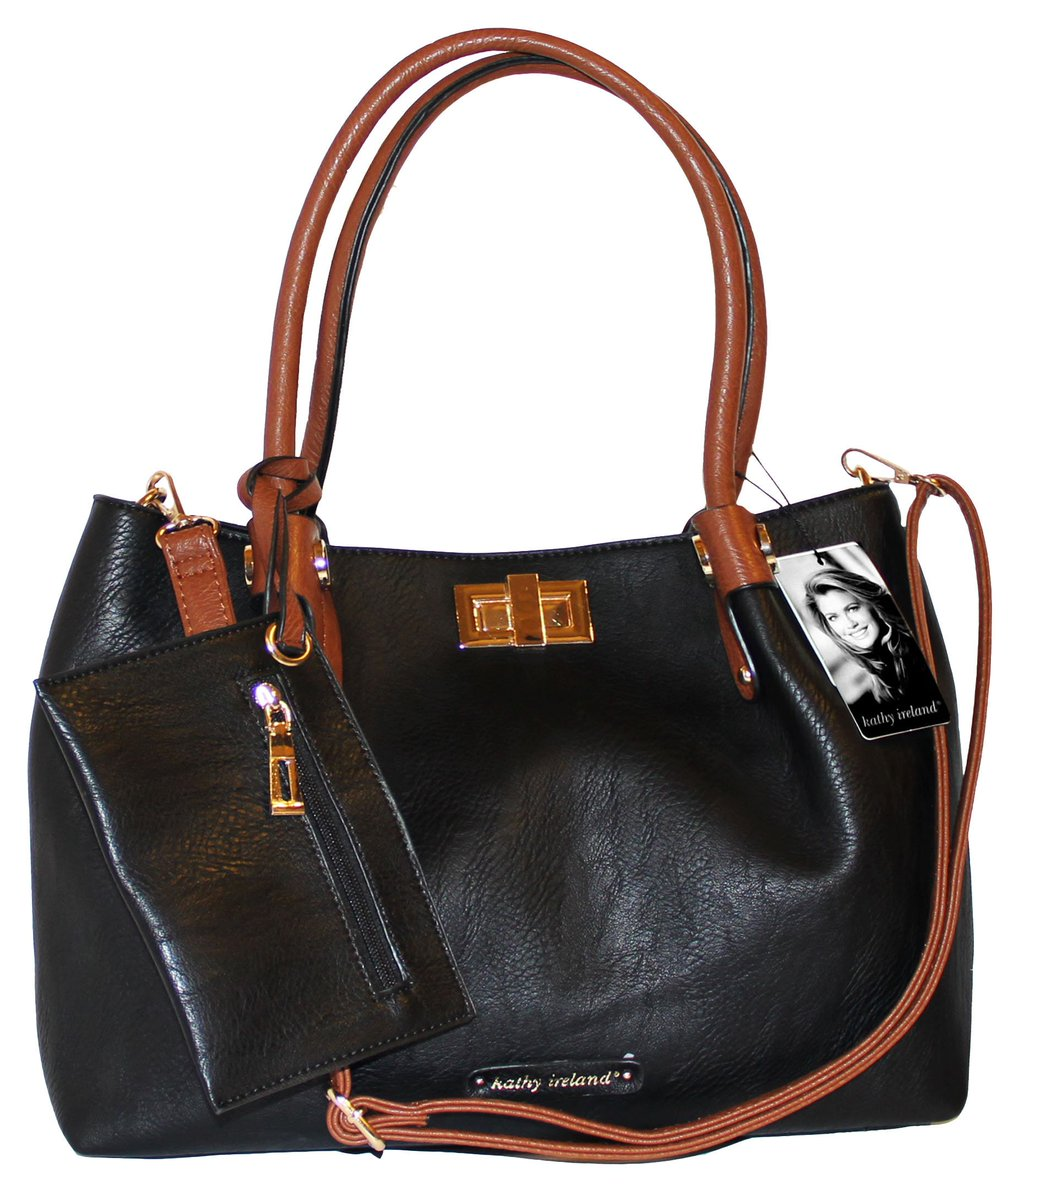 Kathy Ireland On Twitter Counting Down Our Handbag Best Ers Say Hello To The Beauty Group Collection Thank You So Much Xo 1 Of 3